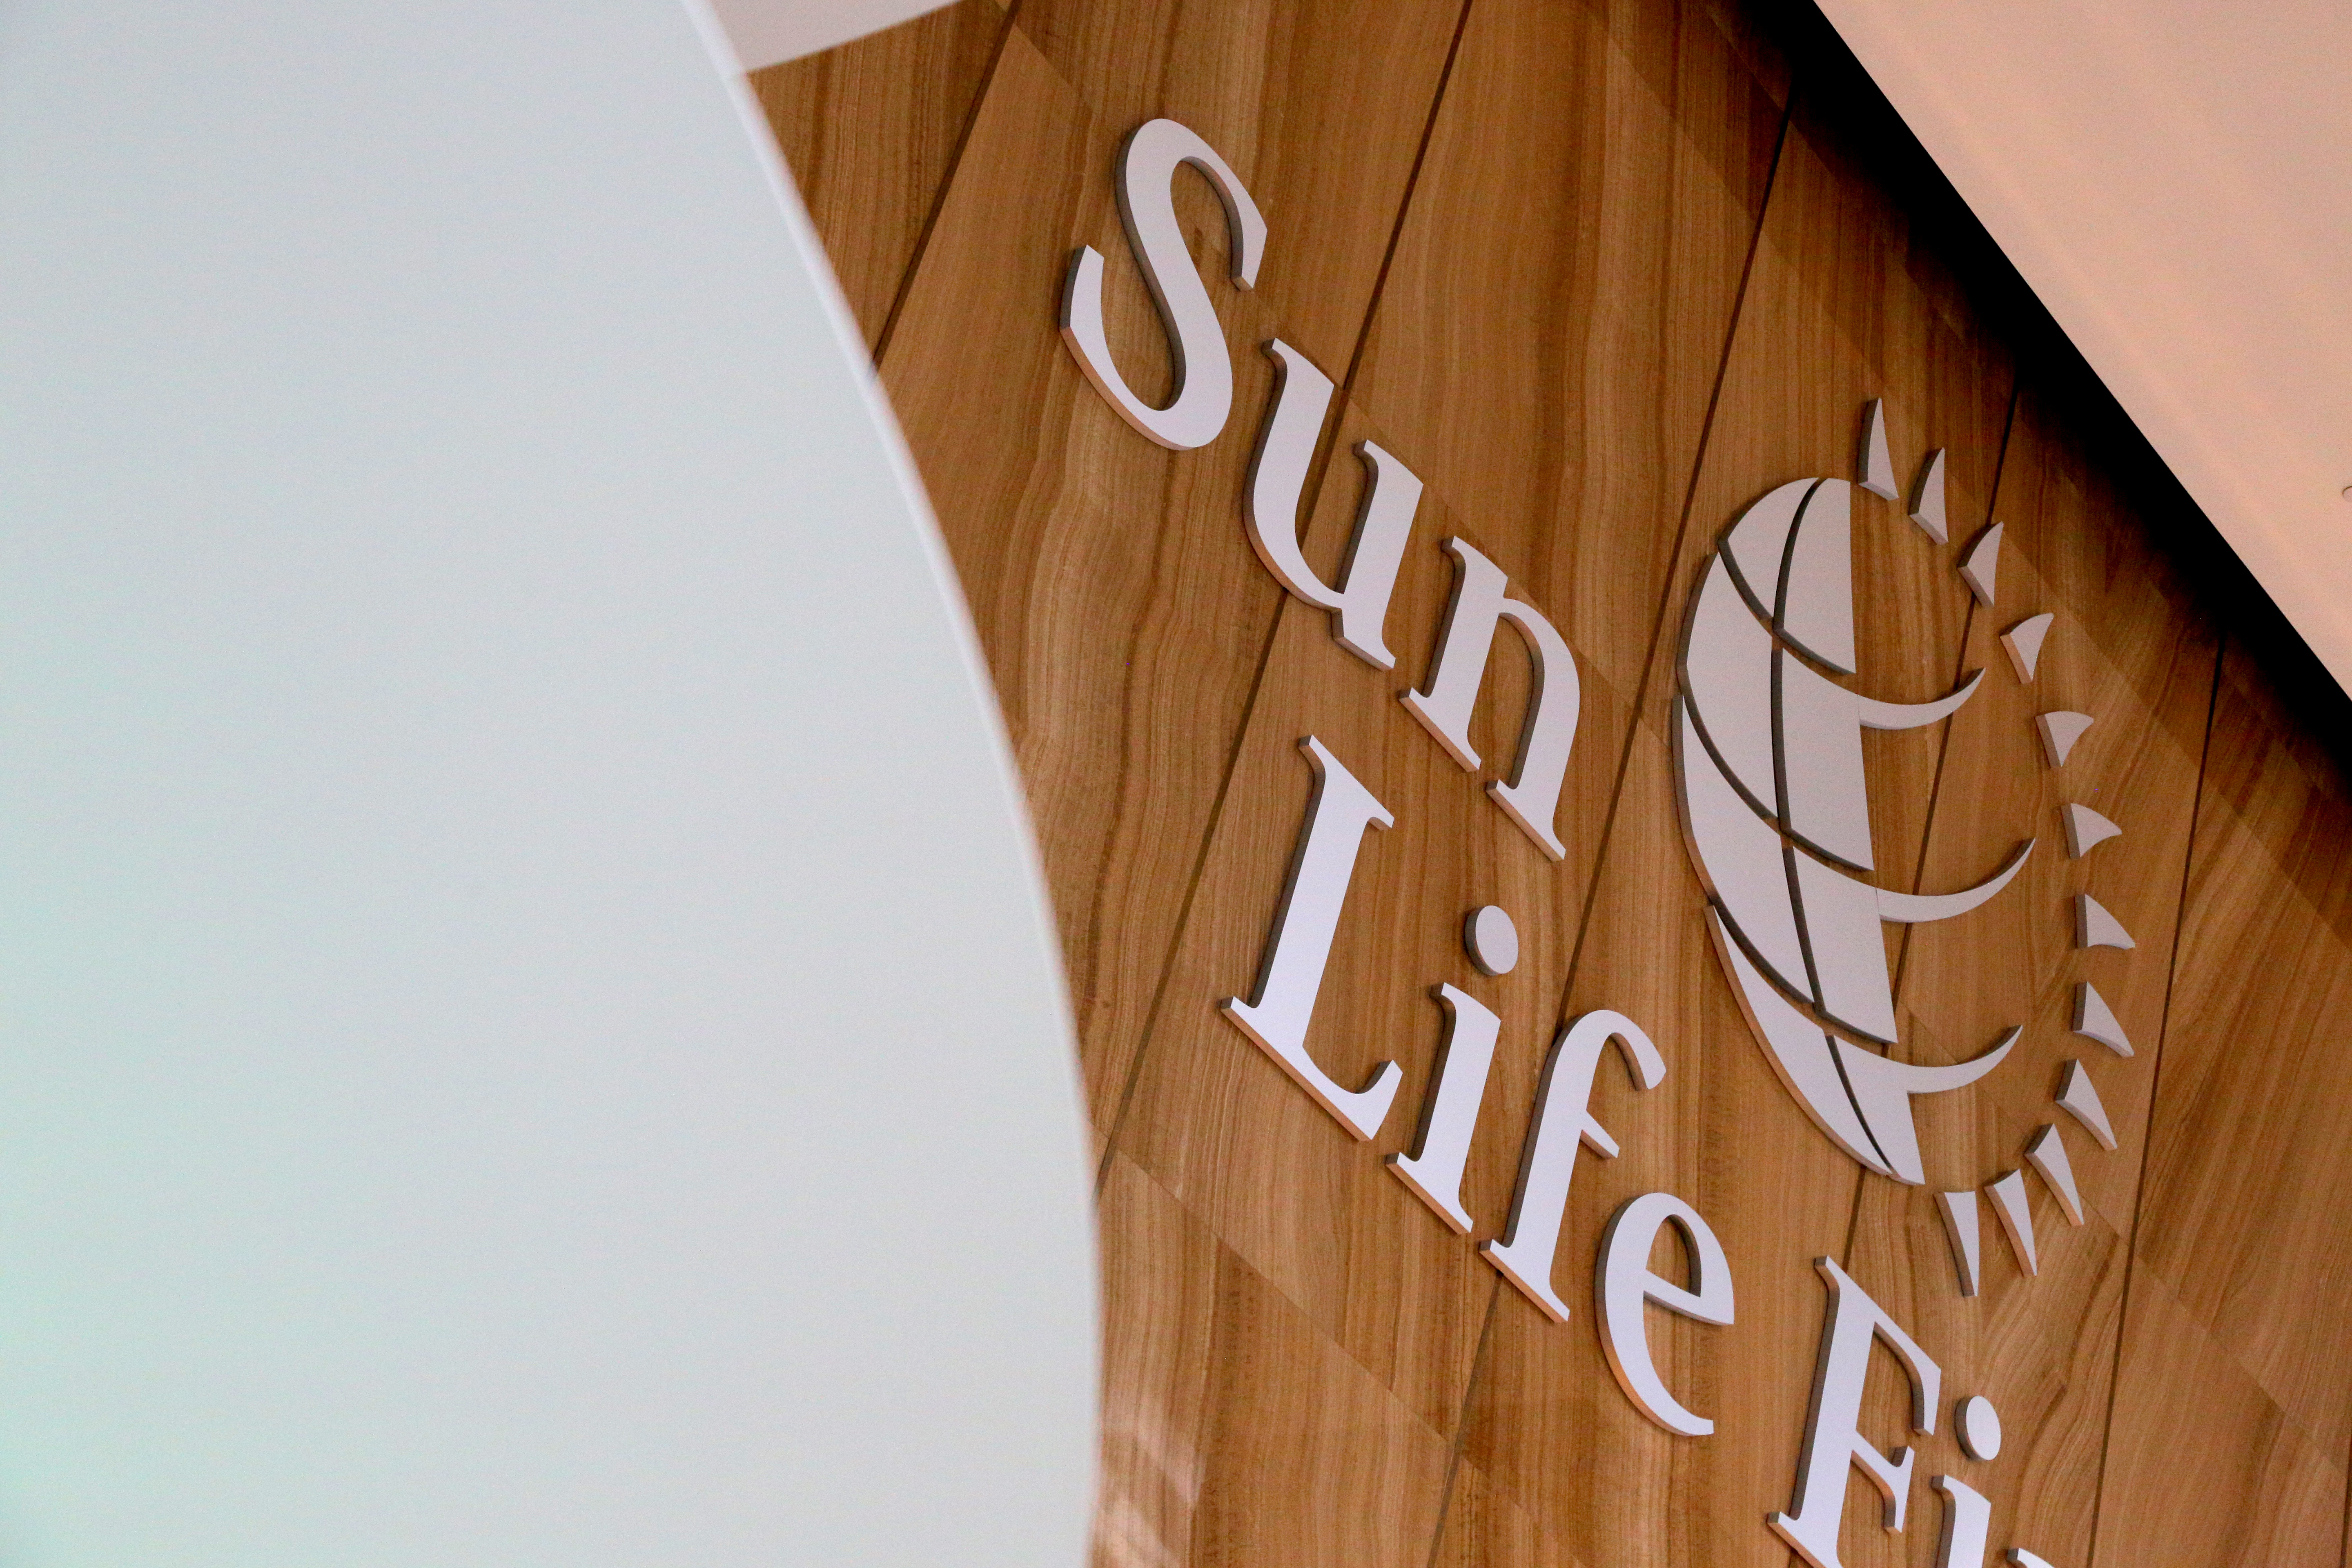 The Sun Life Financial logo is seen at their corporate headquarters of One York Street in Toronto, Ontario, Canada, February 11, 2019.  REUTERS/Chris Helgren//File Photo